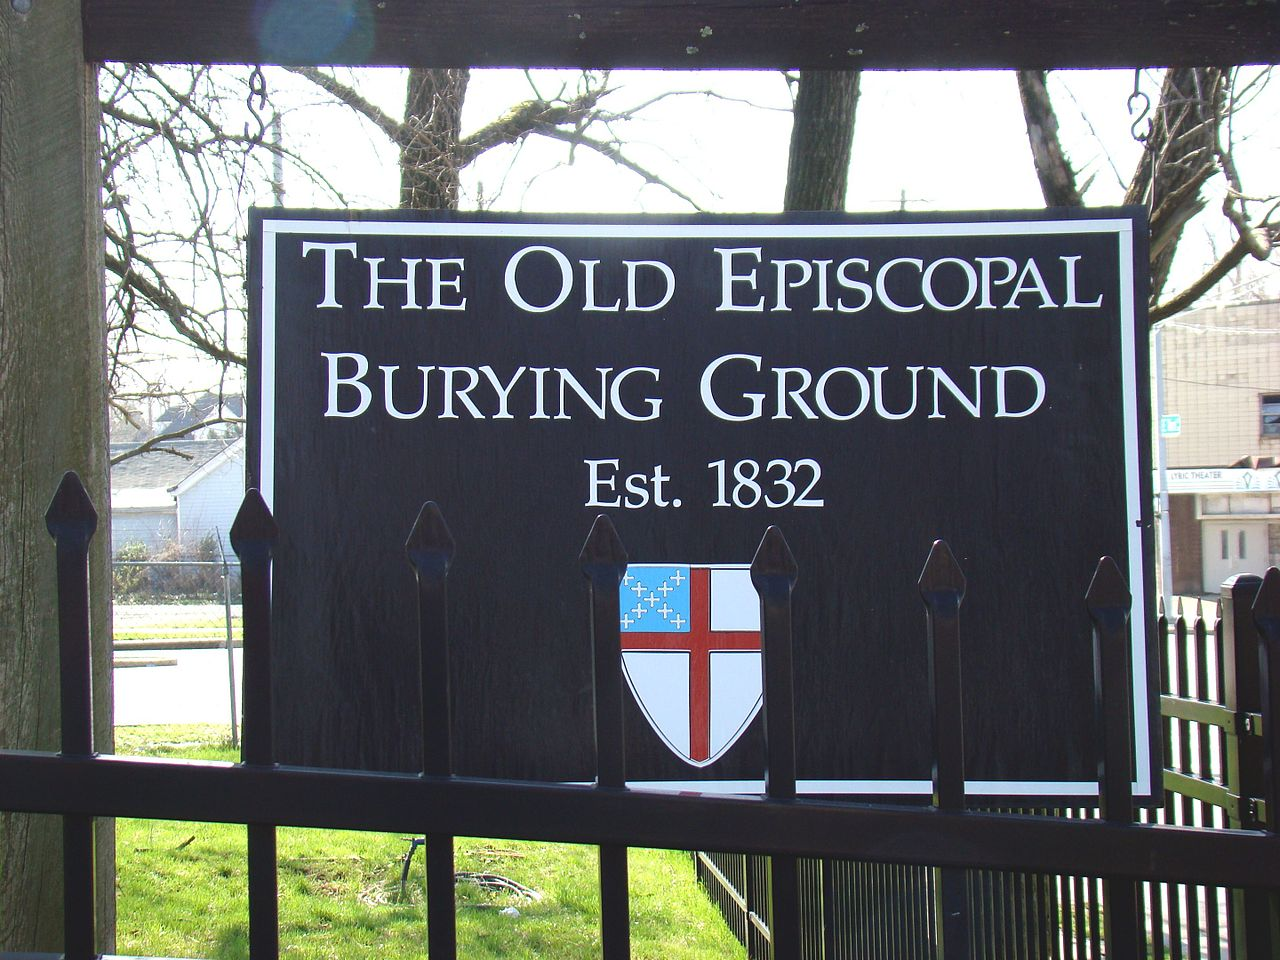 Entrance Sign of The Old Episcopal Burying Ground